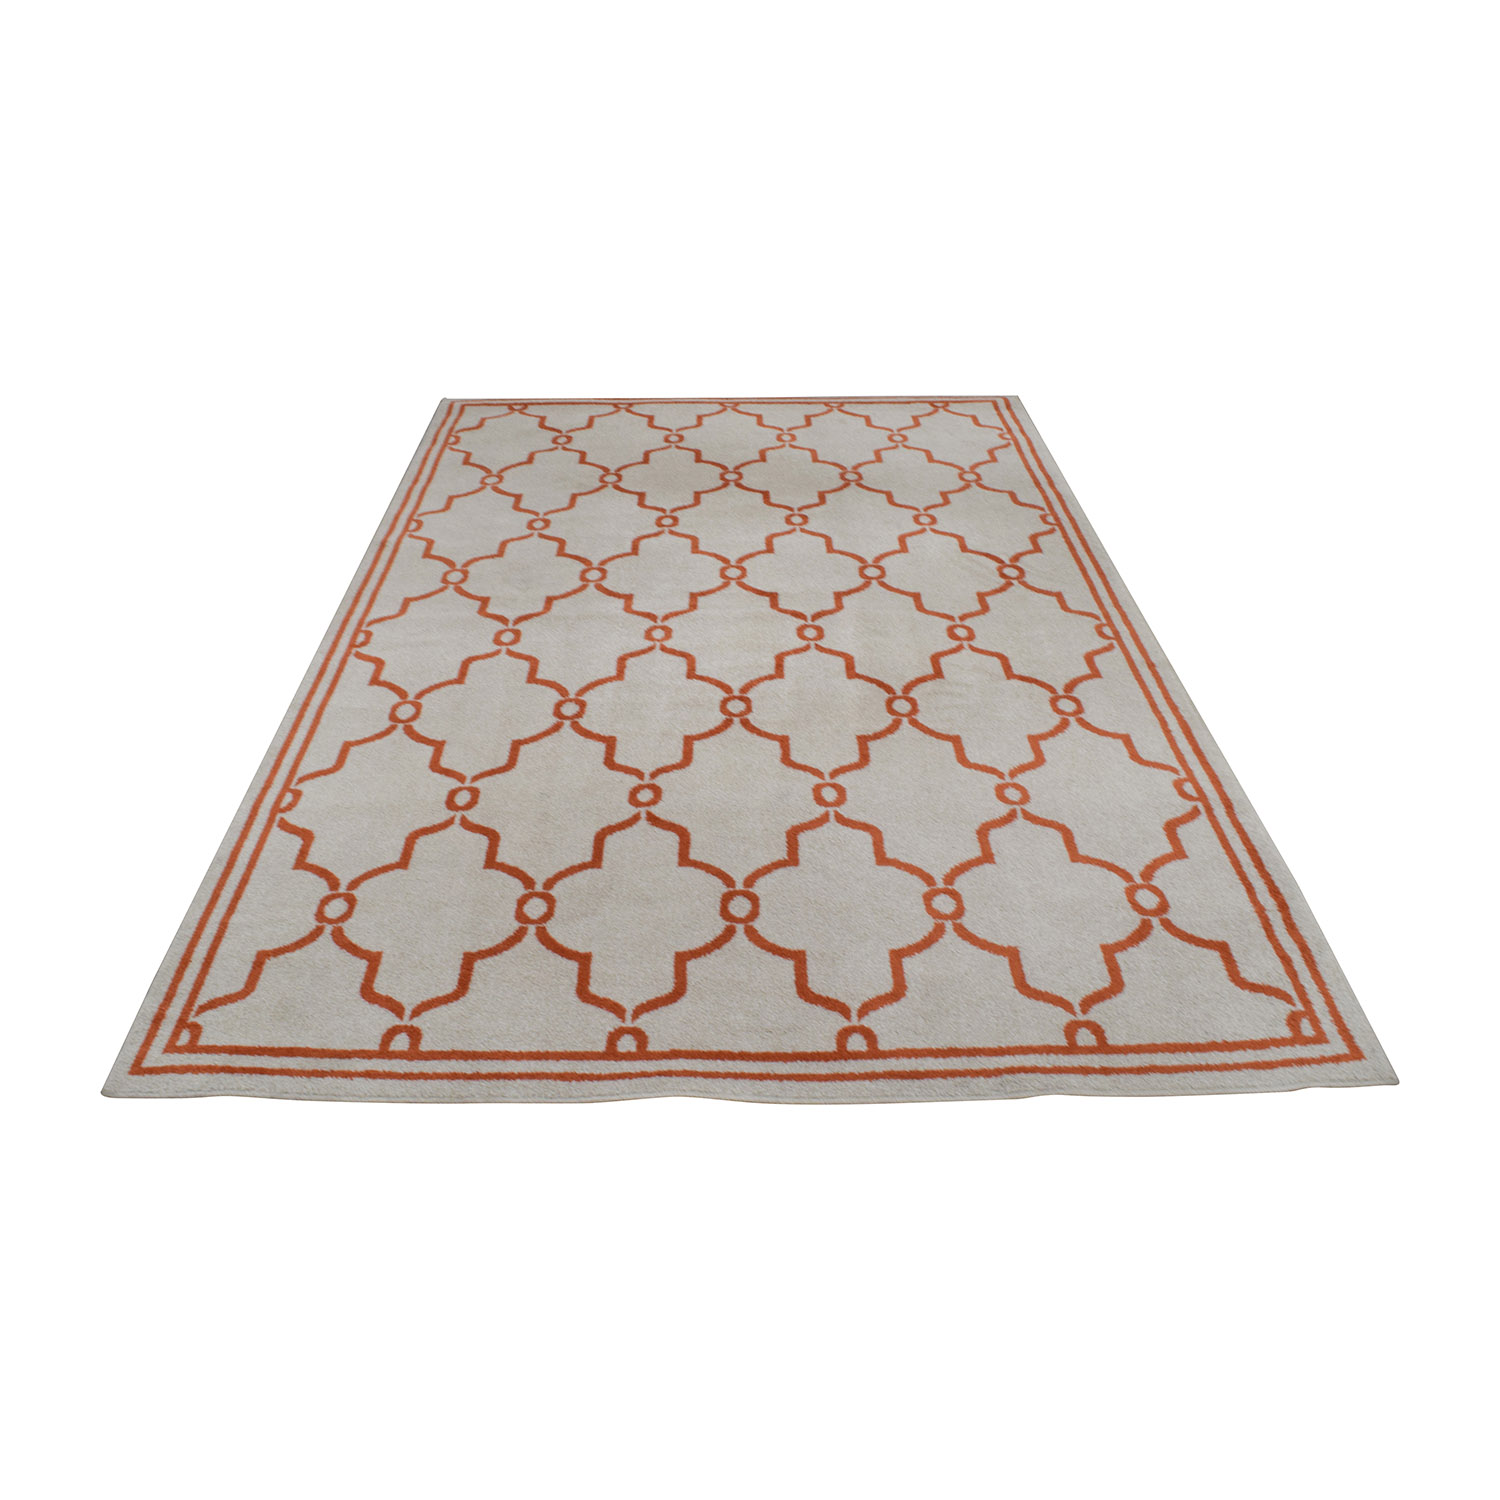 Safavieh Safavieh Amherst Beige and Orange Indoor or Outdoor Rug